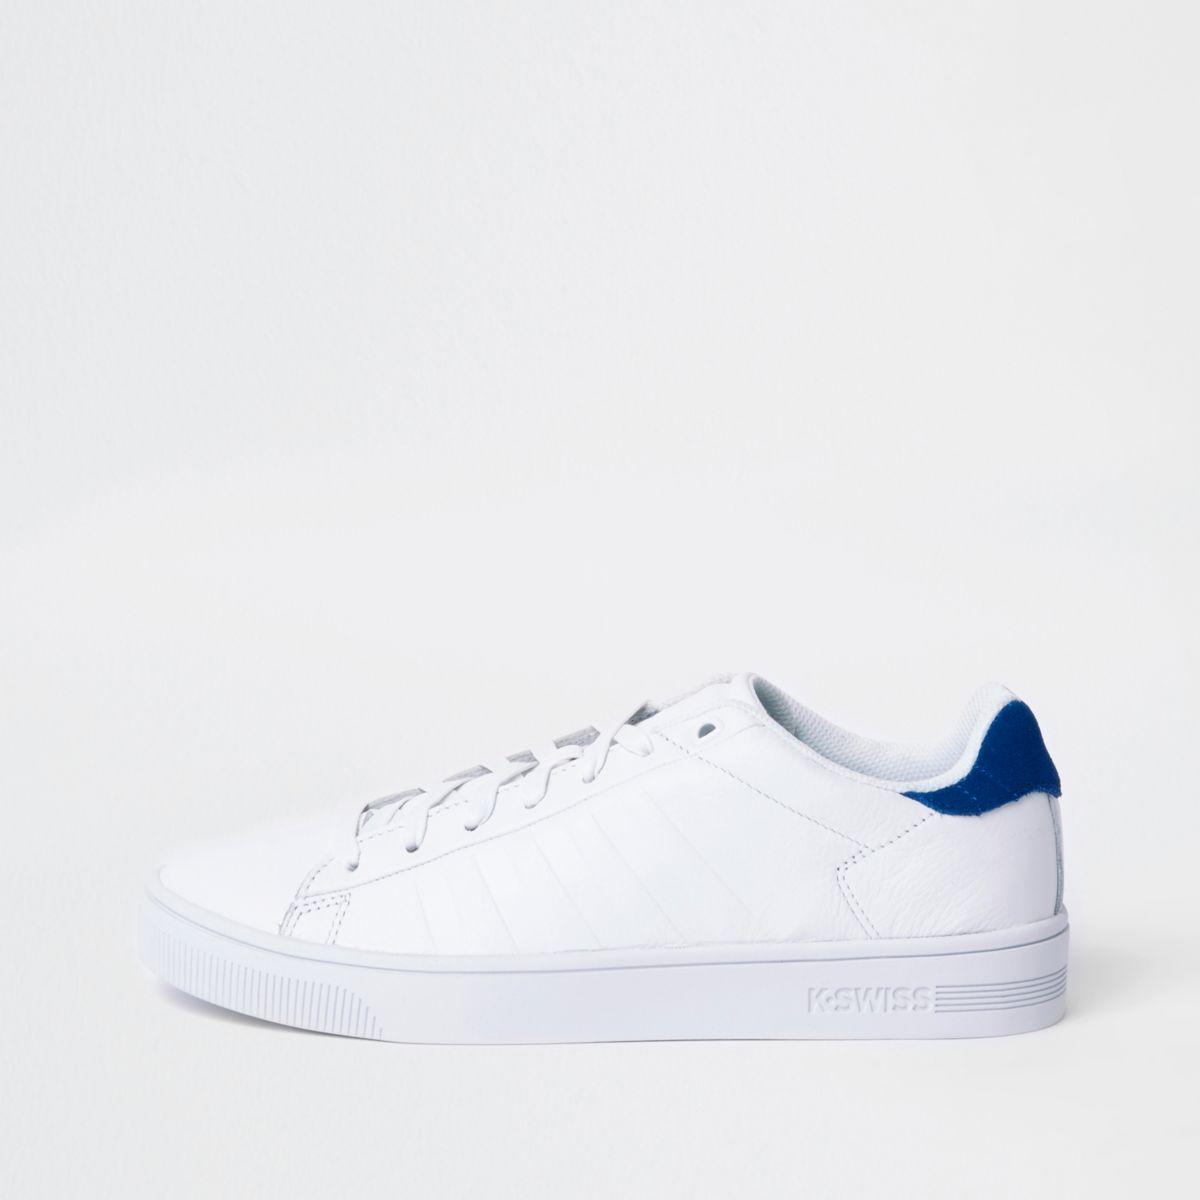 White K-Swiss low top cupsole sneakers